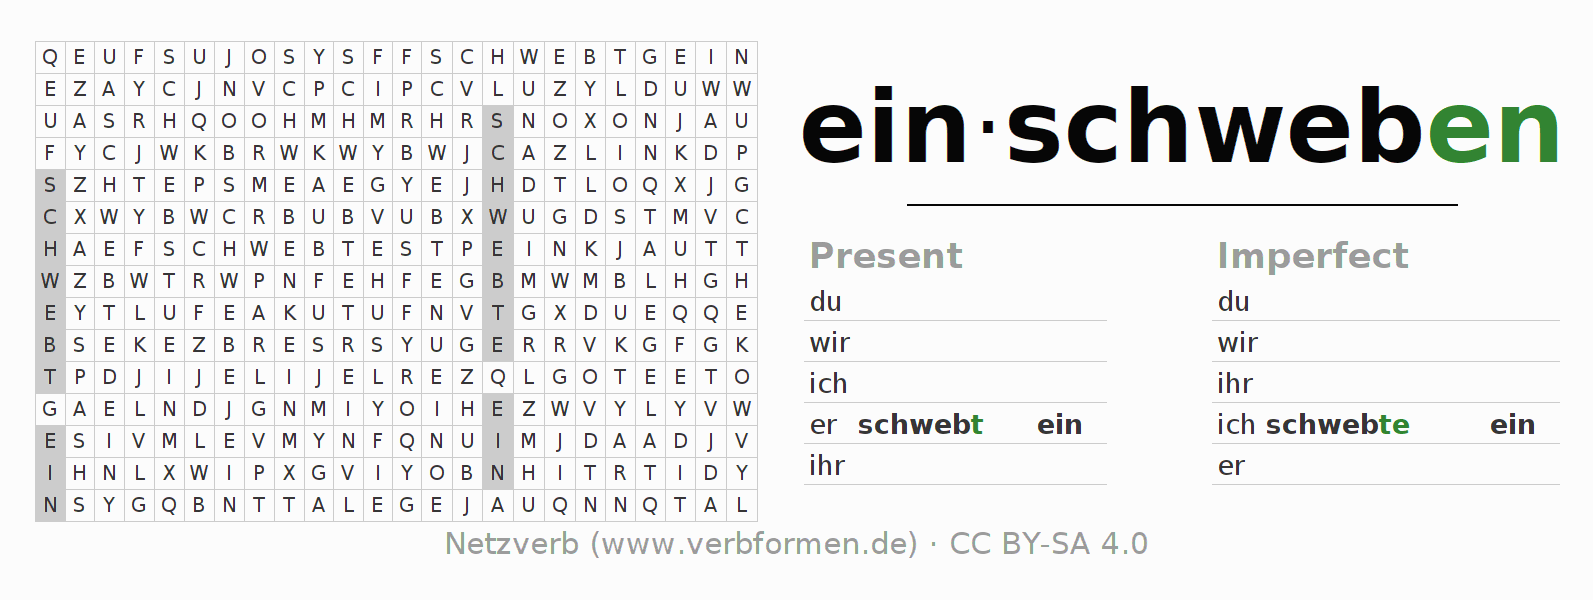 Word search puzzle for the conjugation of the verb einschweben